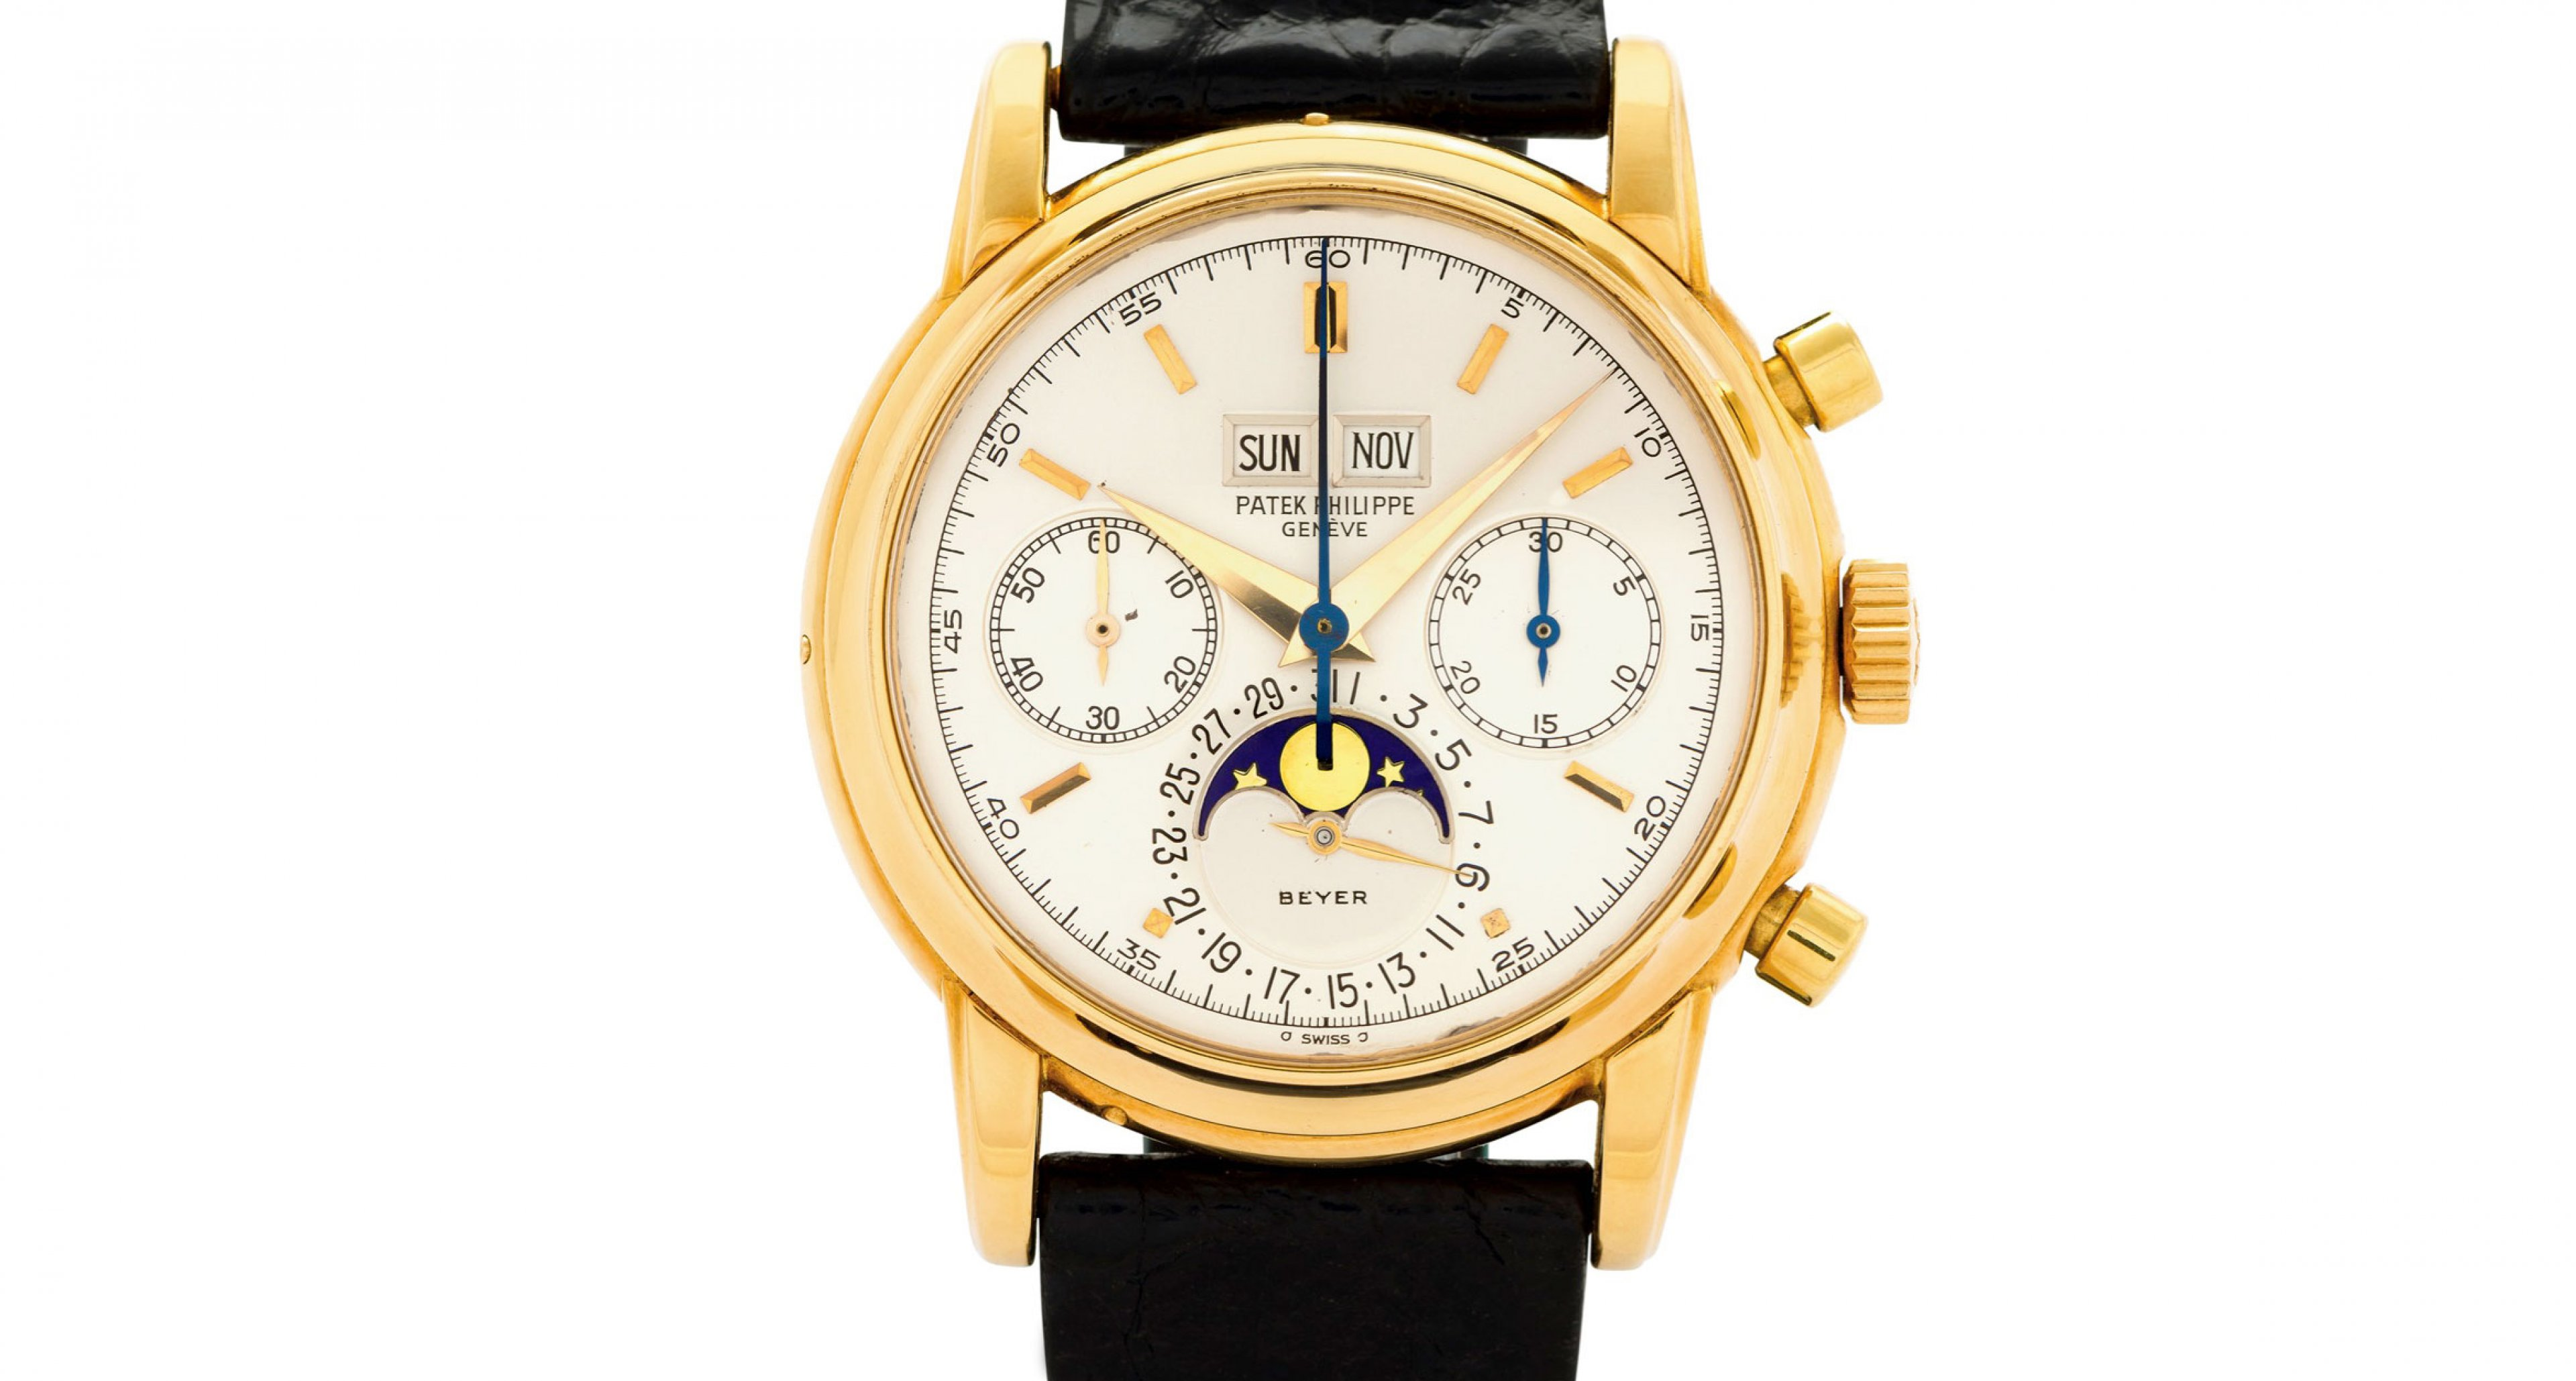 Thies Patek sold by Antiquorum for over 380.000 Swiss Francs is a young classic. It was sold in April 1981